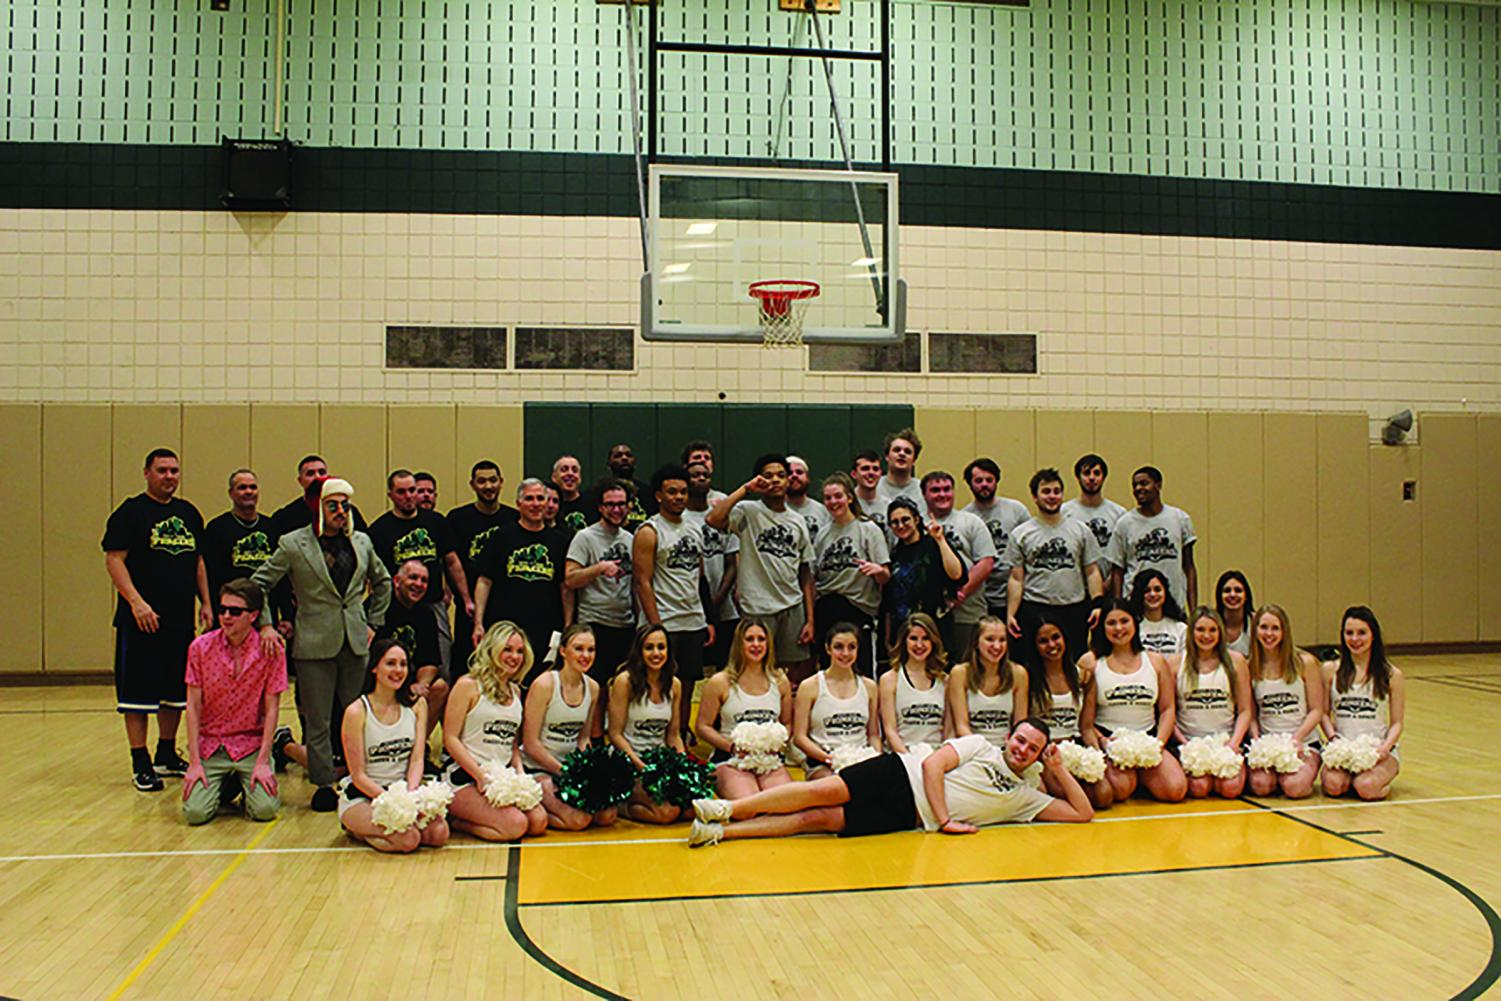 Members of the Competitive Cheer and Dance team pose with the students and faculty who competed in the Hoopla basketball game. The students defeated the staff to a score of 58-45.